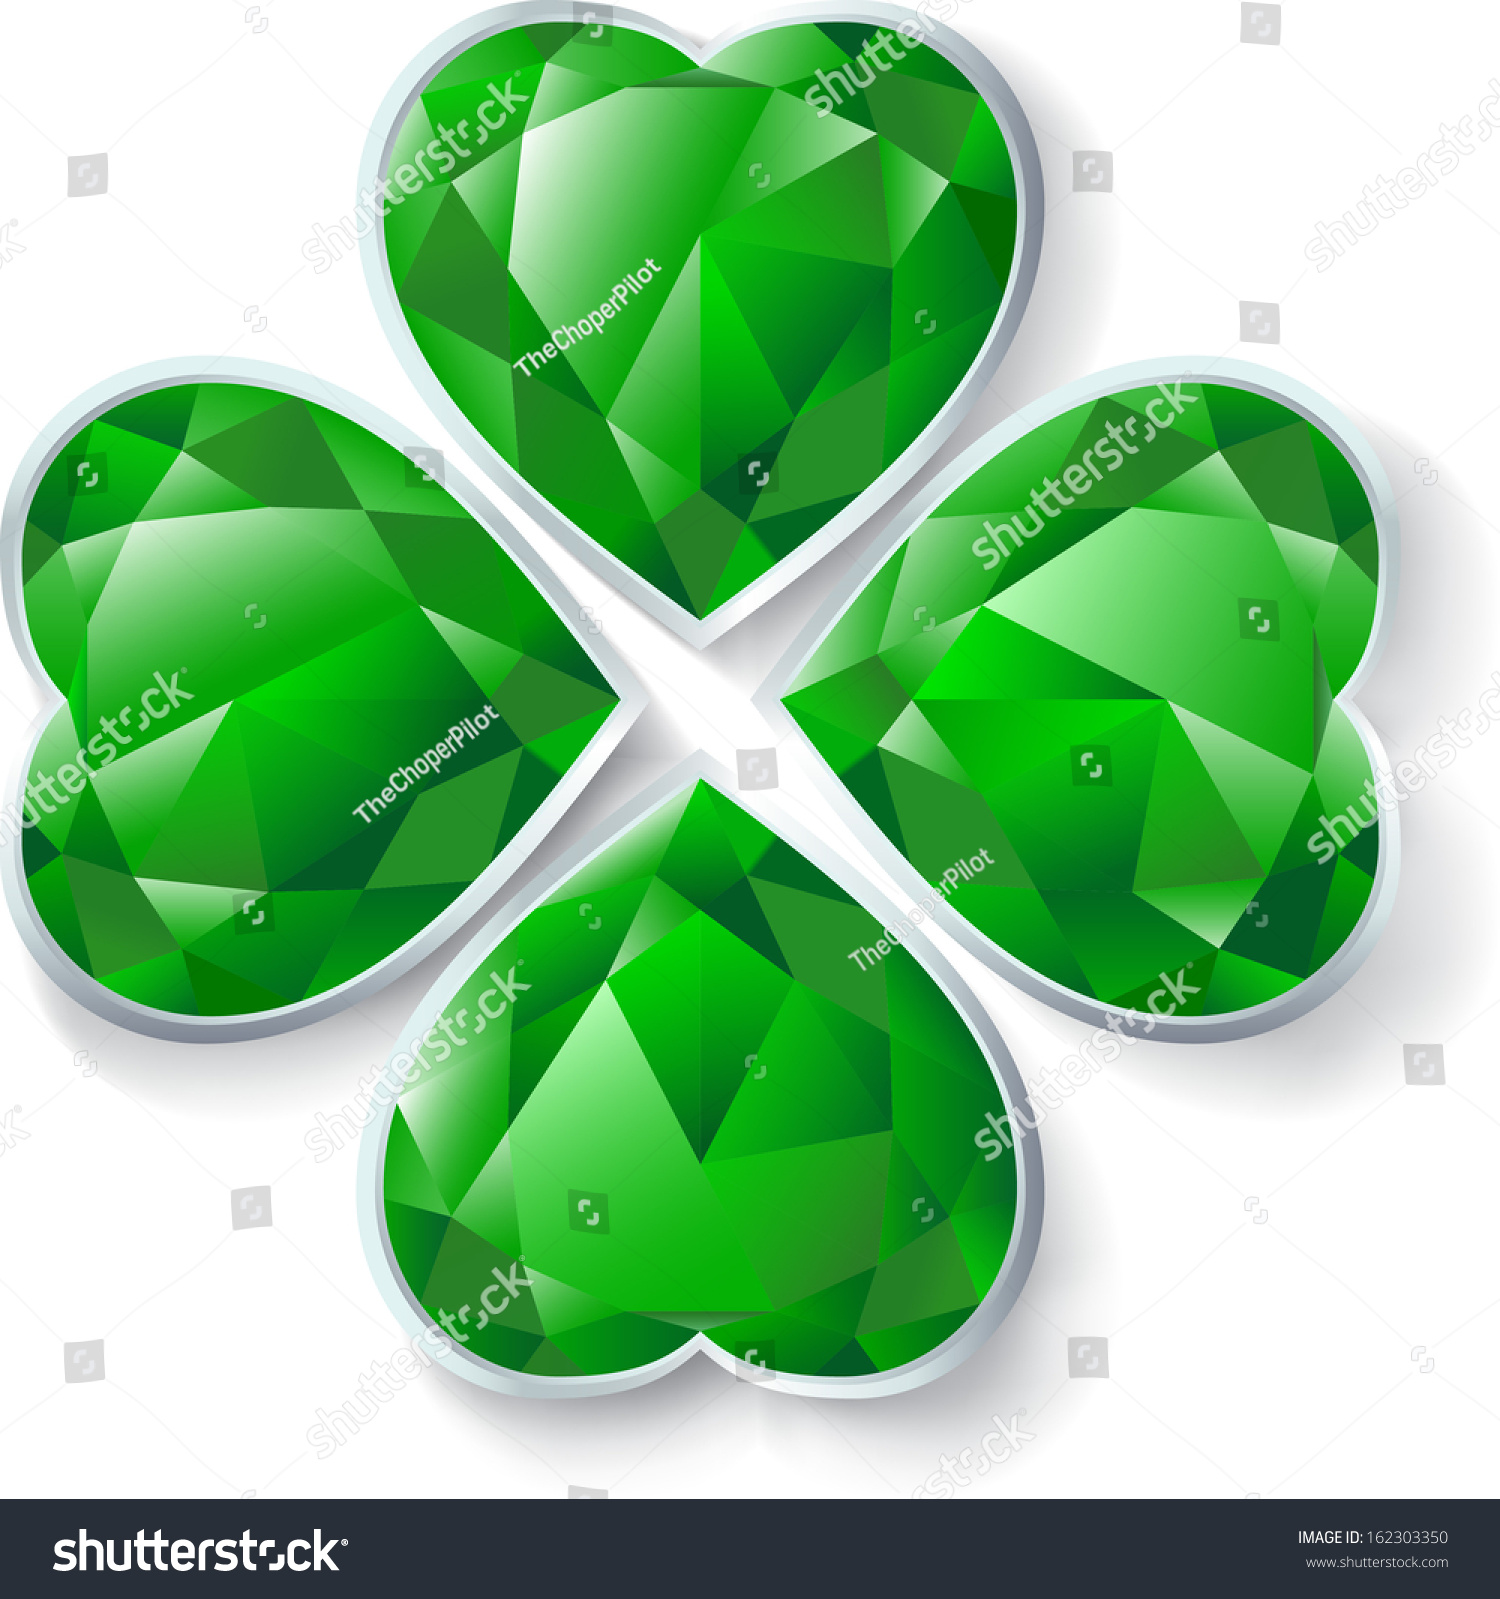 d green render photo shutterstock illustration image stock diamond